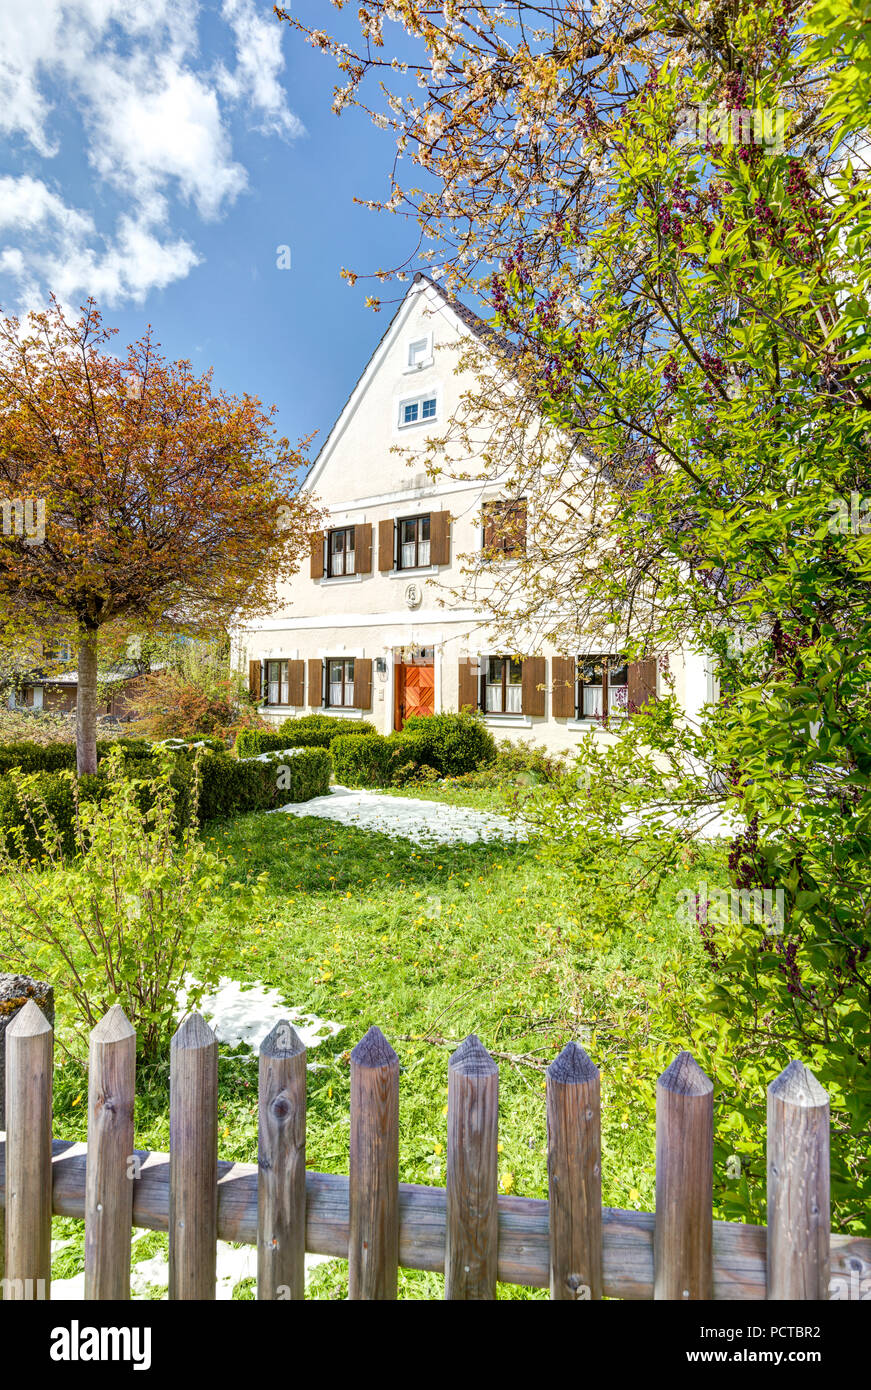 House facade and front yard in Oberammergau, spring, Bavaria, Upper Bavaria, Germany - Stock Image